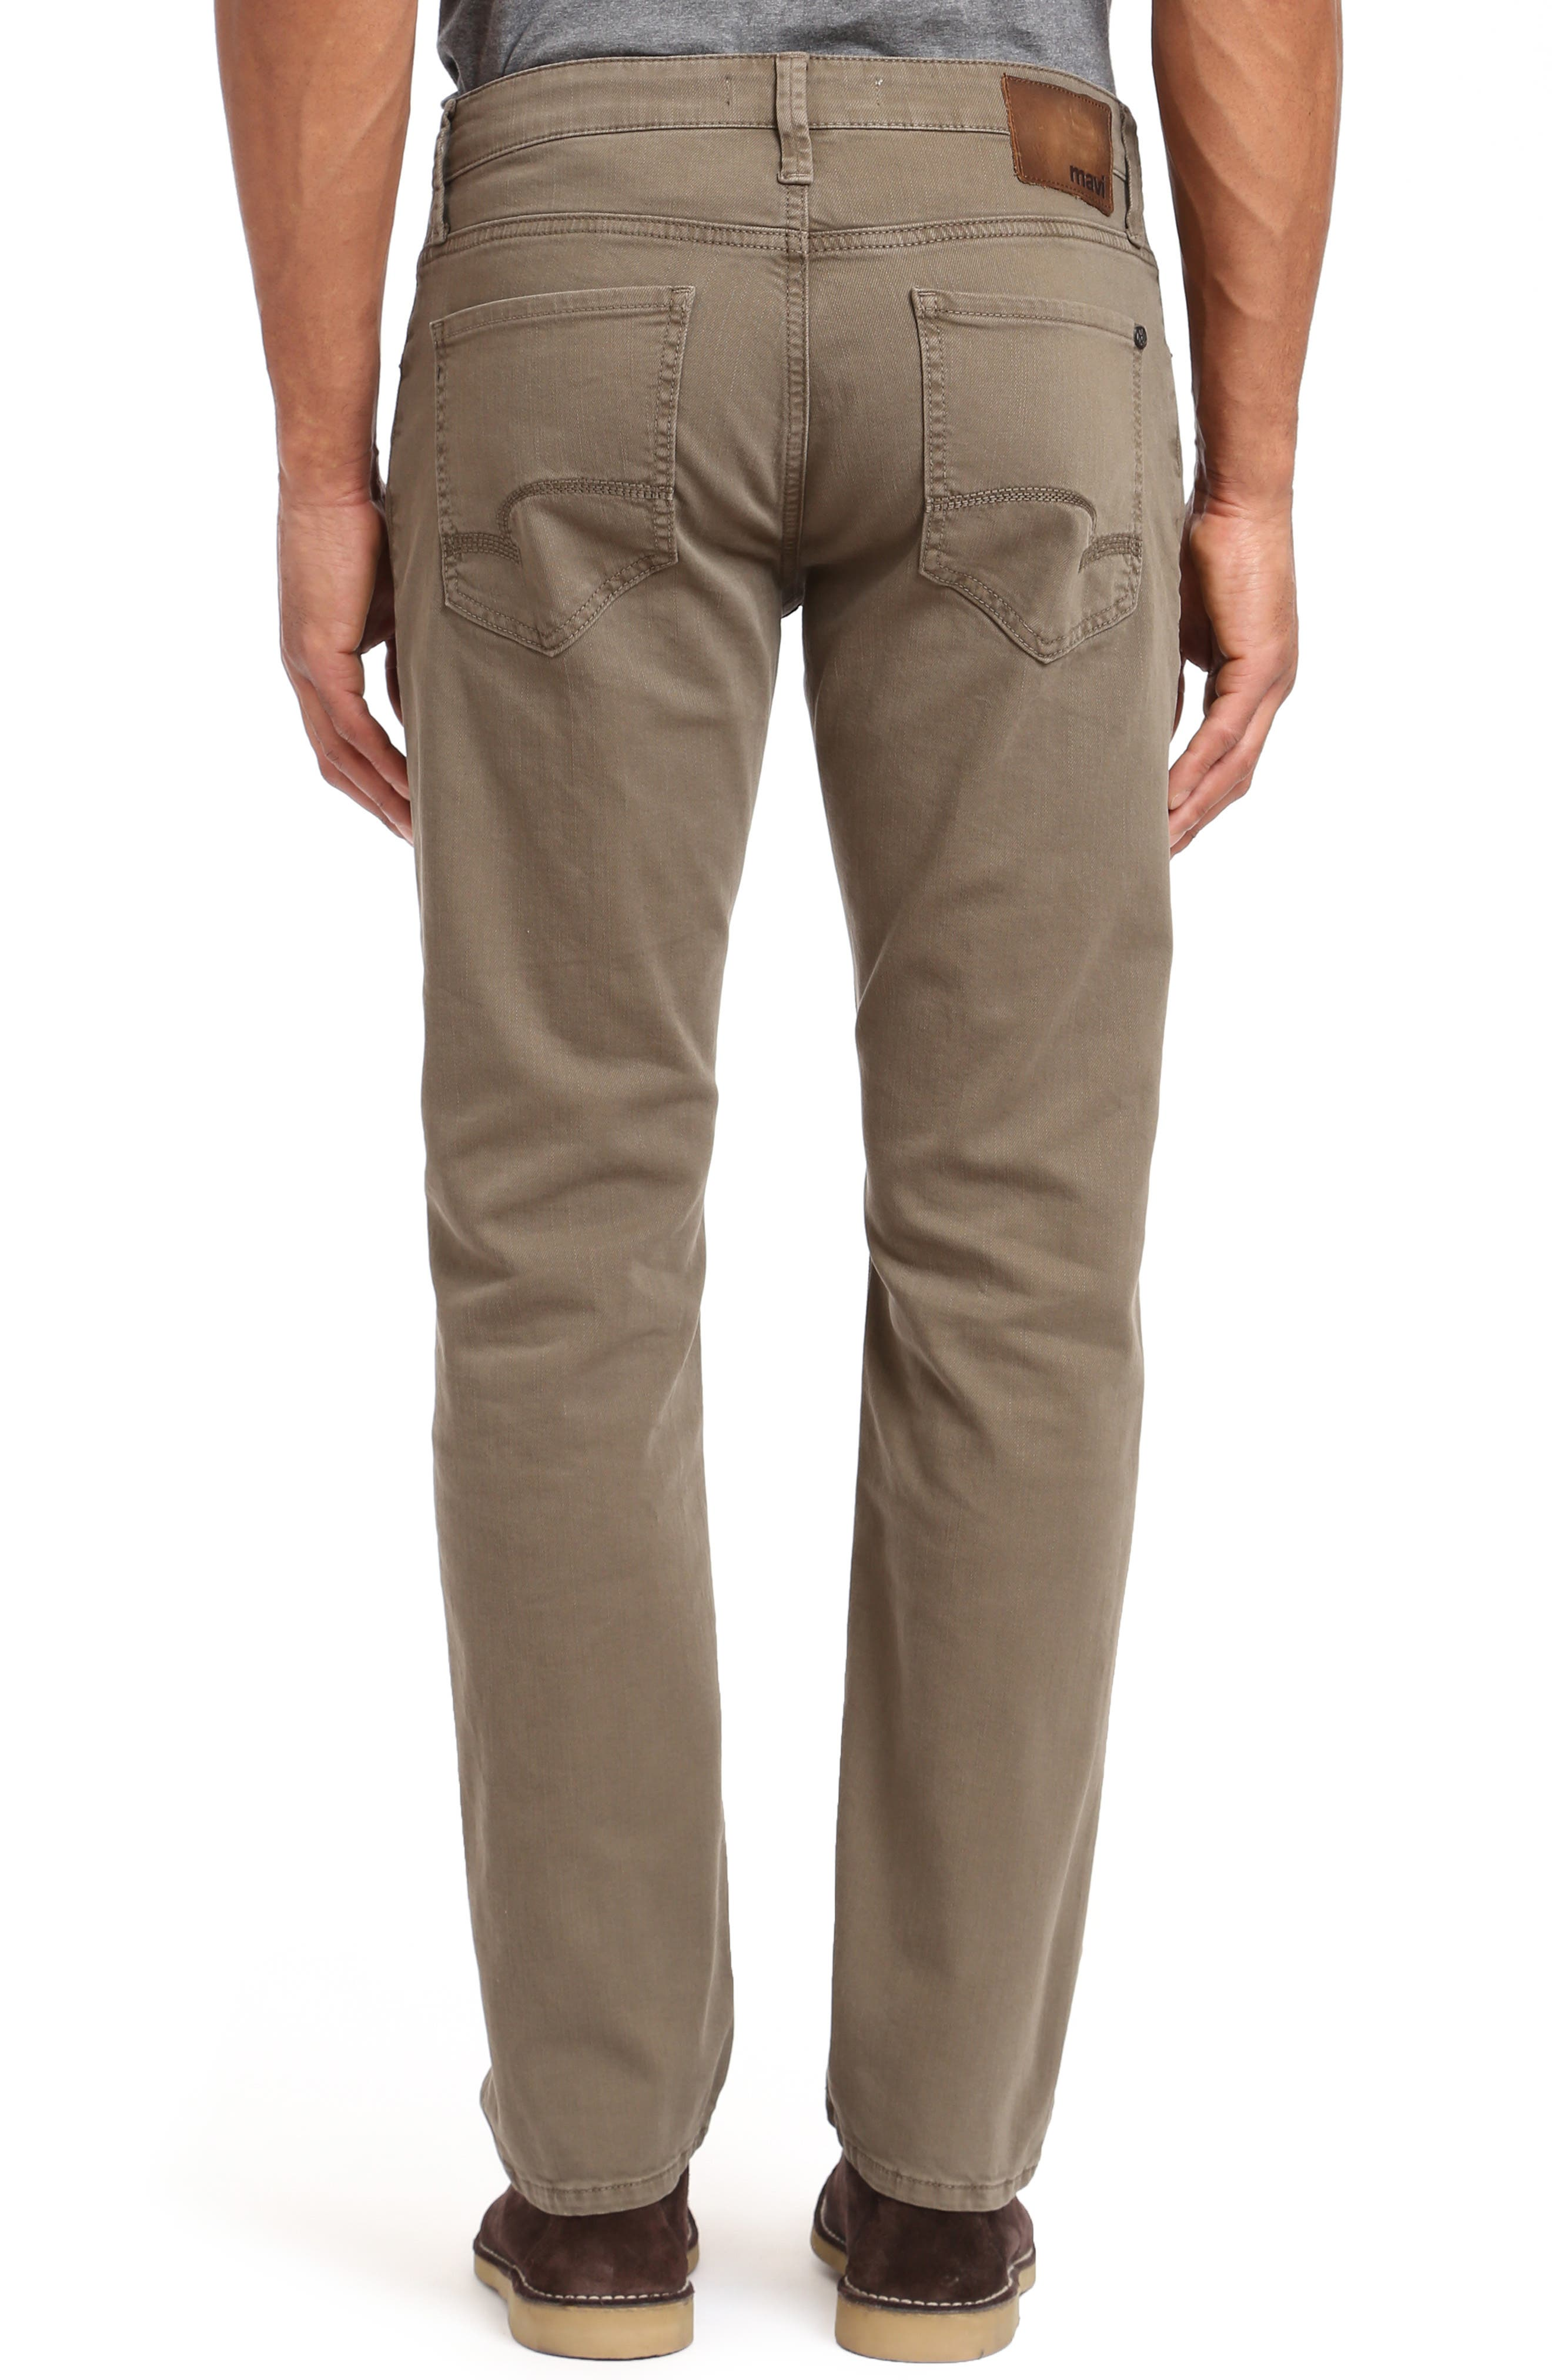 Zach Straight Leg Jeans,                             Alternate thumbnail 2, color,                             KHAKI WASHED COMFORT